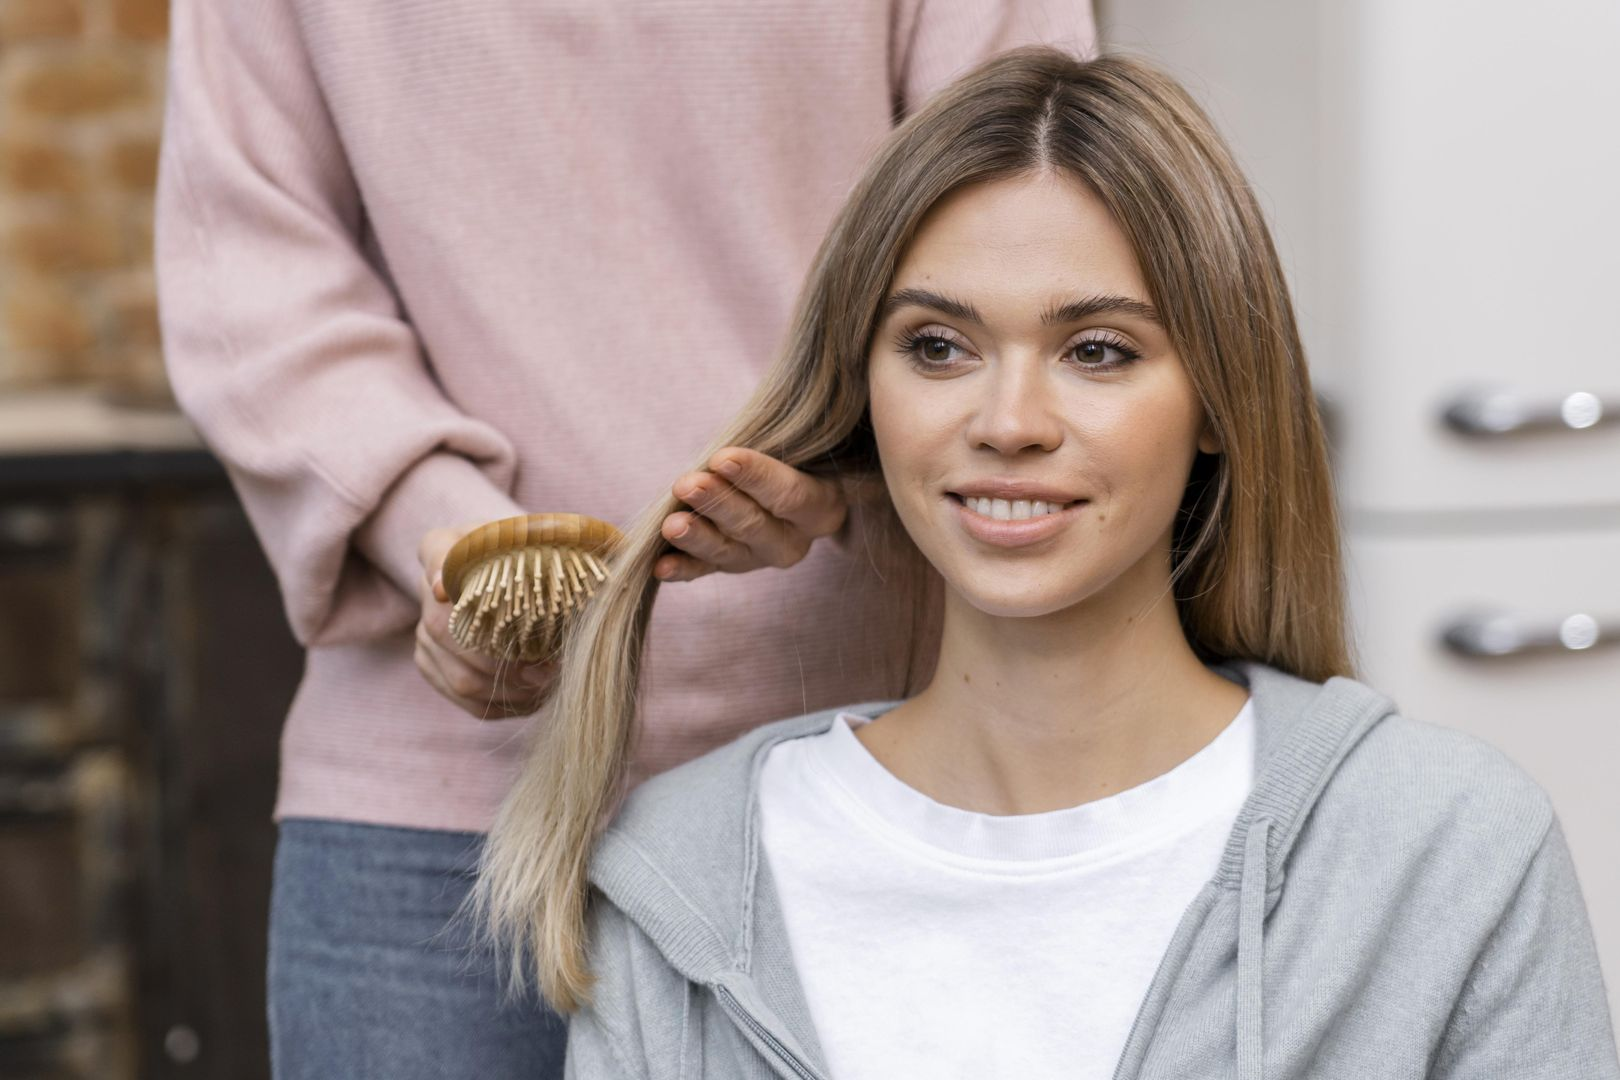 front-view-of-woman-getting-her-hair-brushed-at-the-salon_wynik